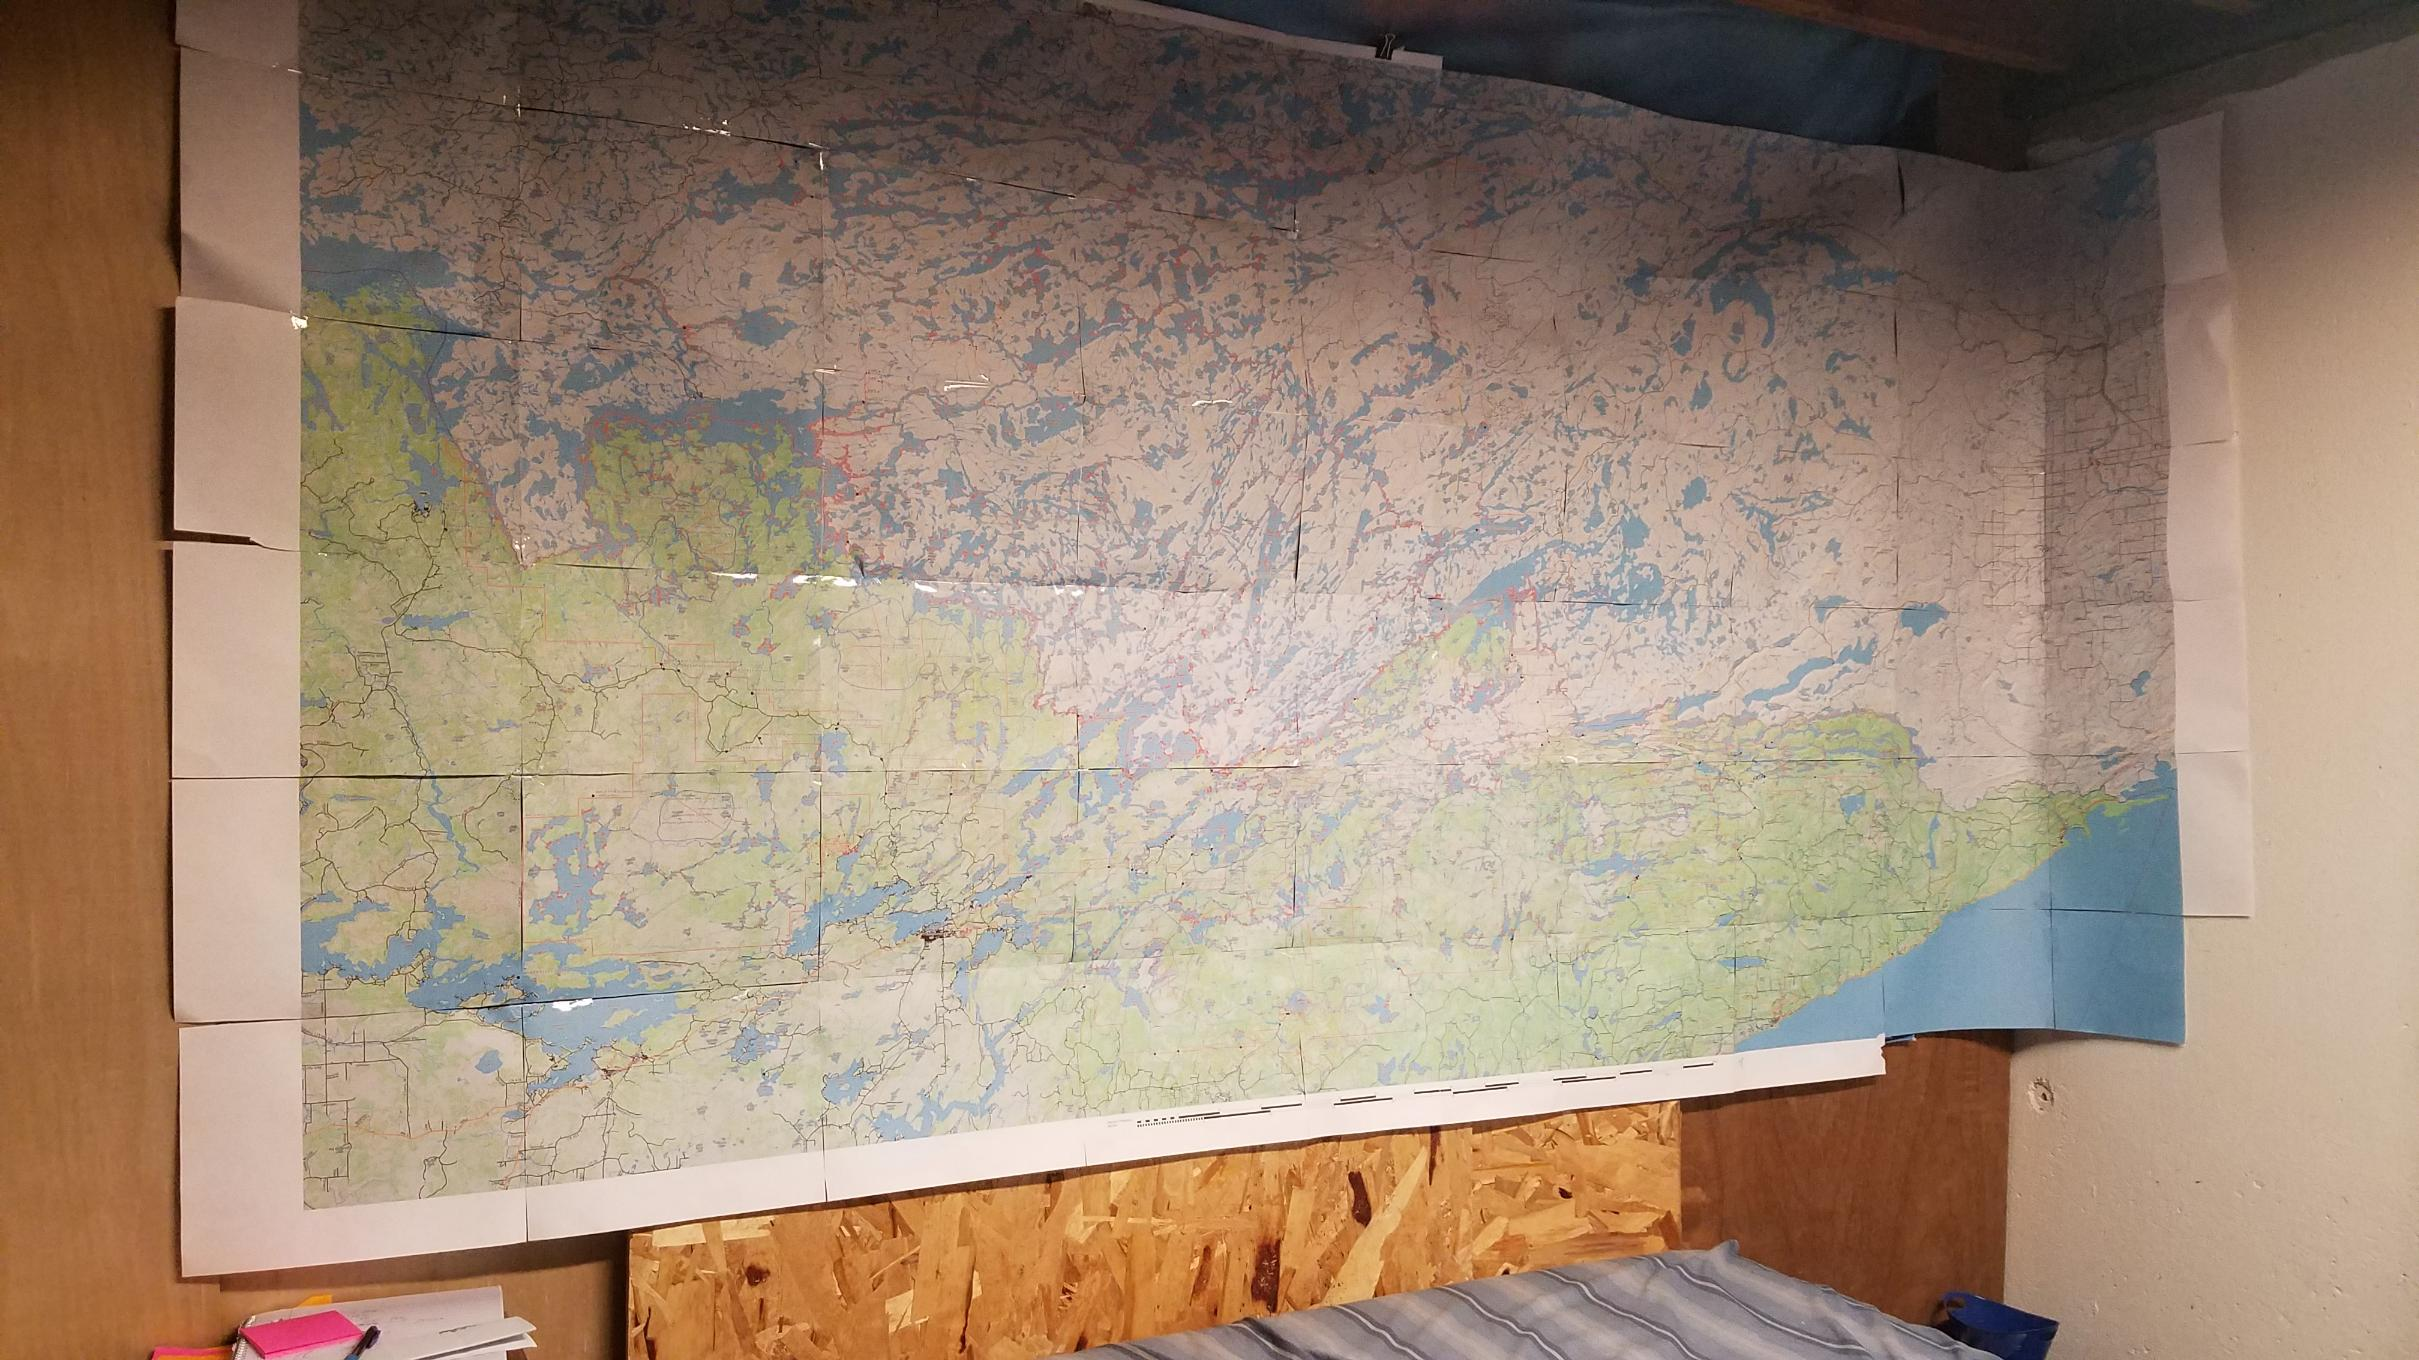 BWCA 94' x 48' Map on Wall